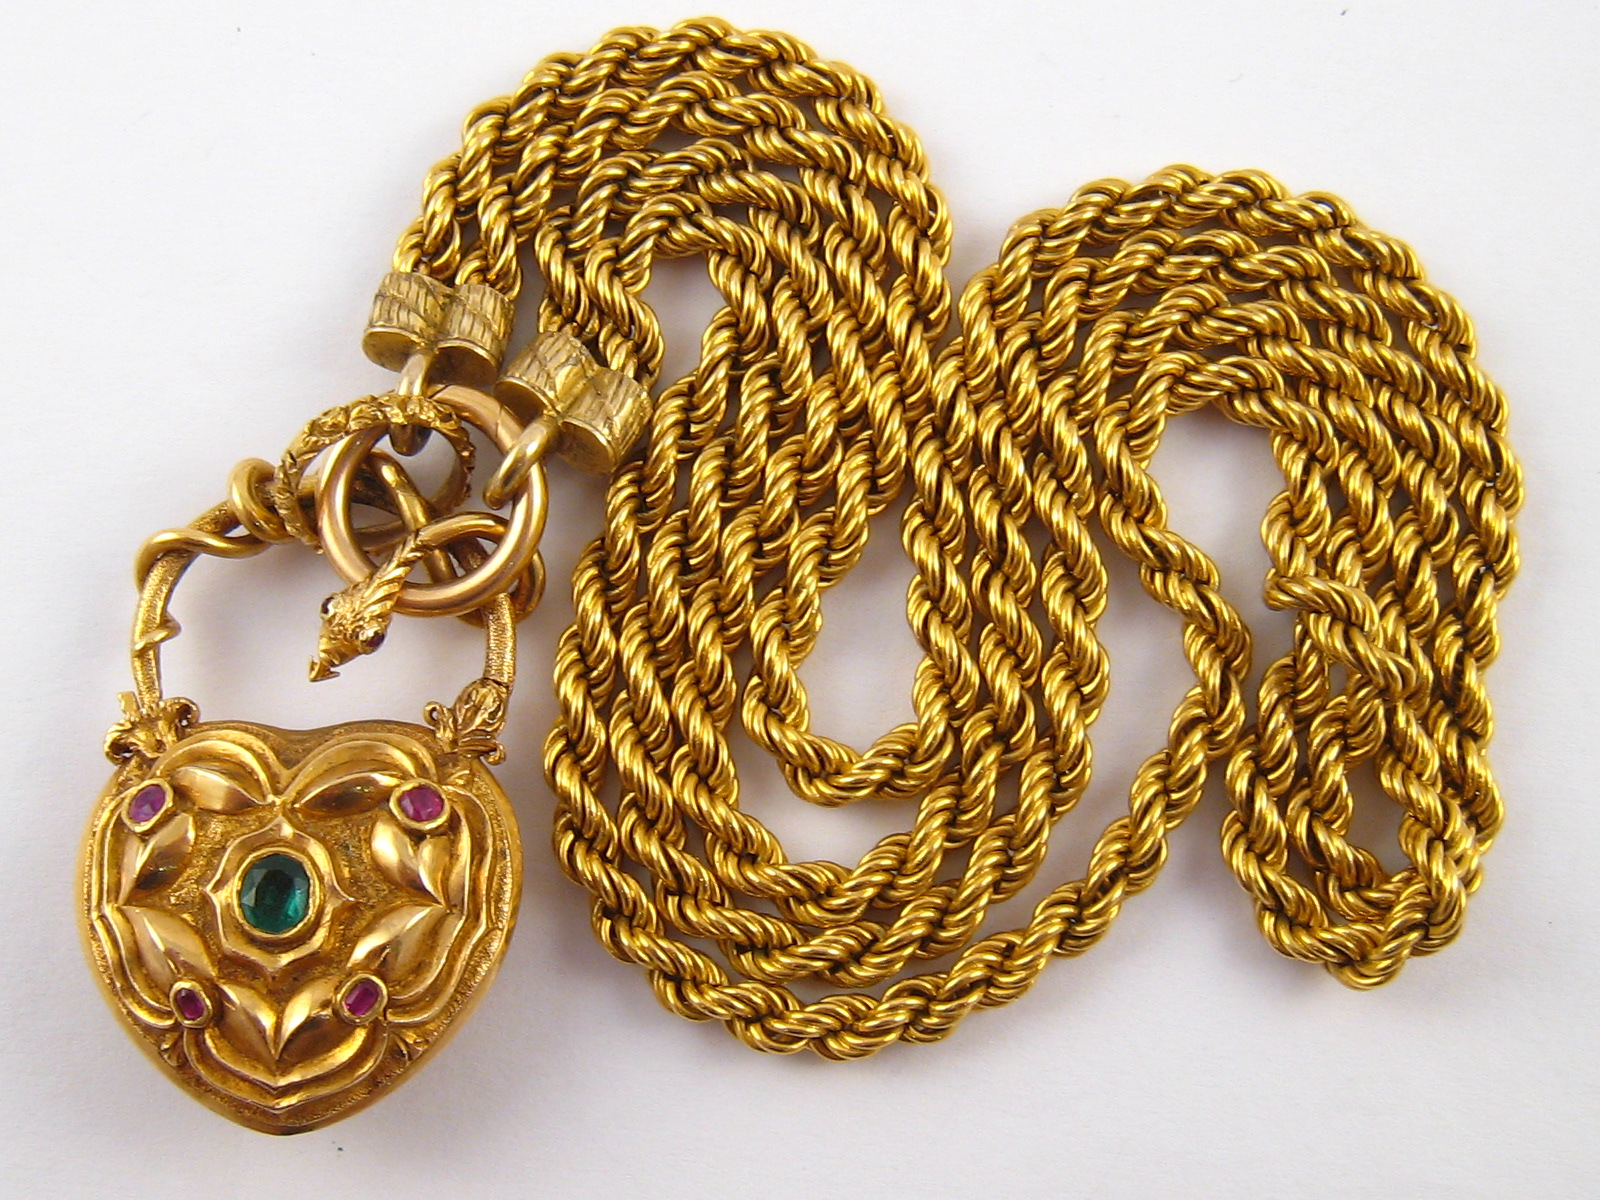 A fine antique gold necklace, the pendant symbolising love, designed as a heart shaped padlock - Image 7 of 15